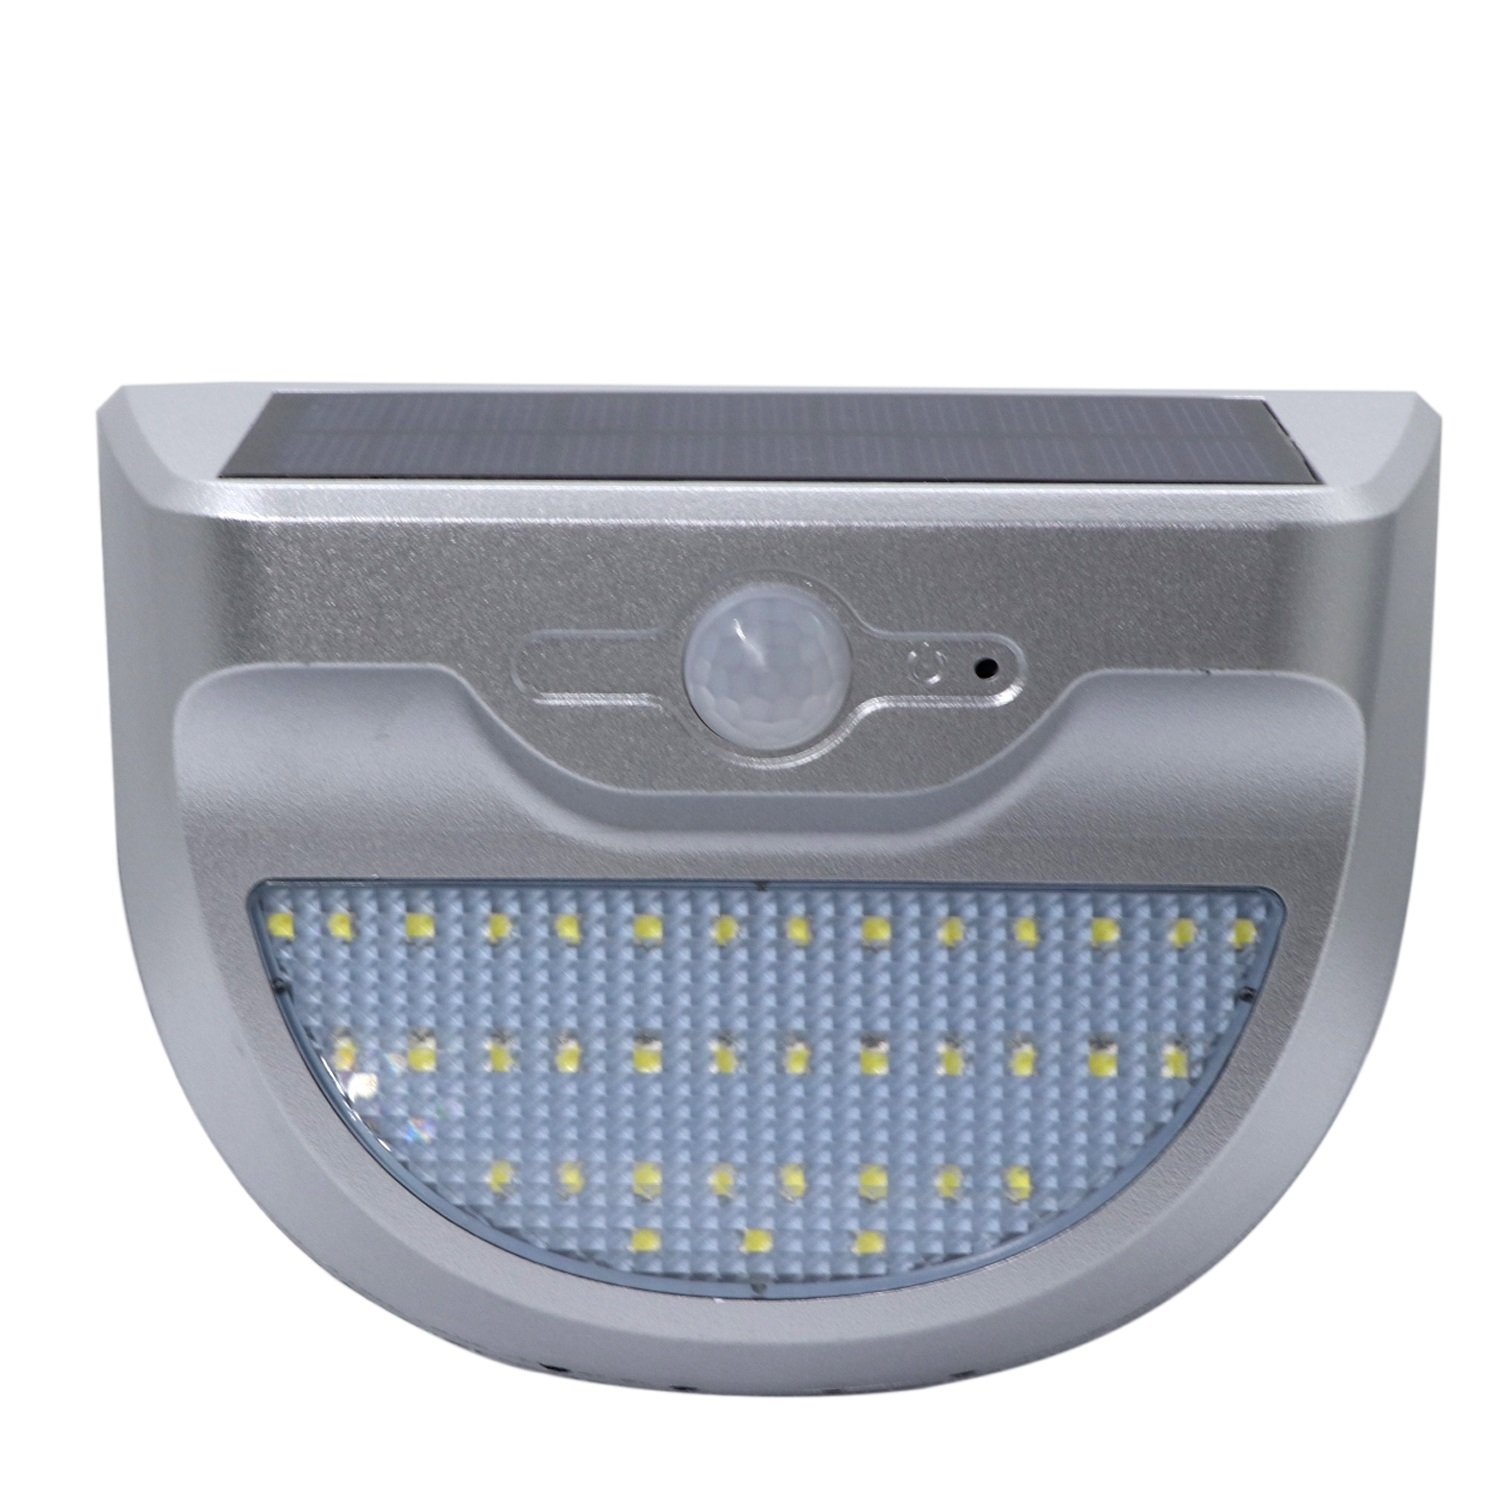 37LED 3.5Watts Waterproof LED Easy-to-Install Security Lights Solar Light Lamps Garden Lights Outdoor Landscape Lawn Lamp Solar Wall Lamps (1Pcs) Safety (Color : White)